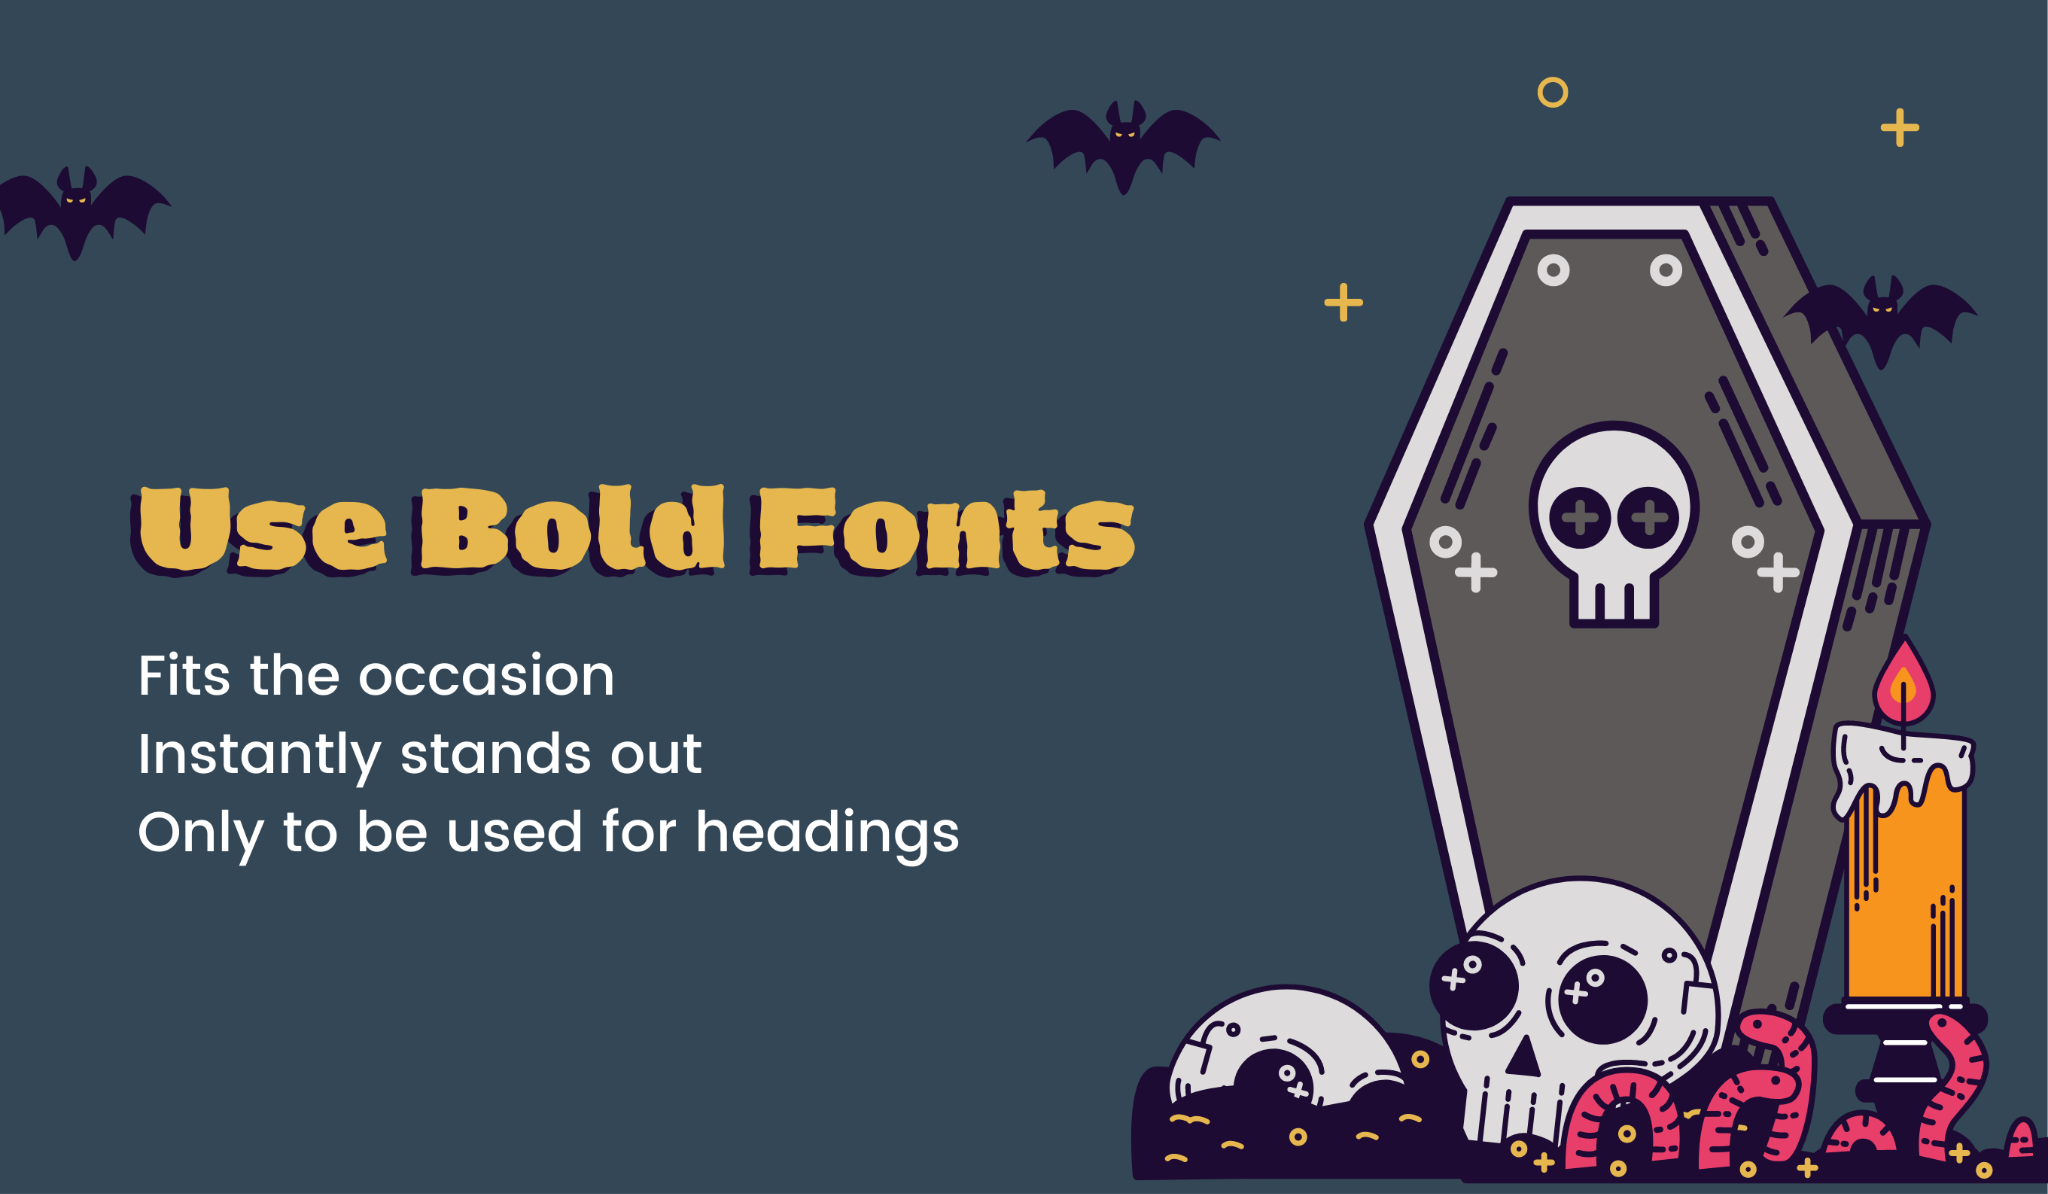 Reasons to use bold fonts in Halloween emails